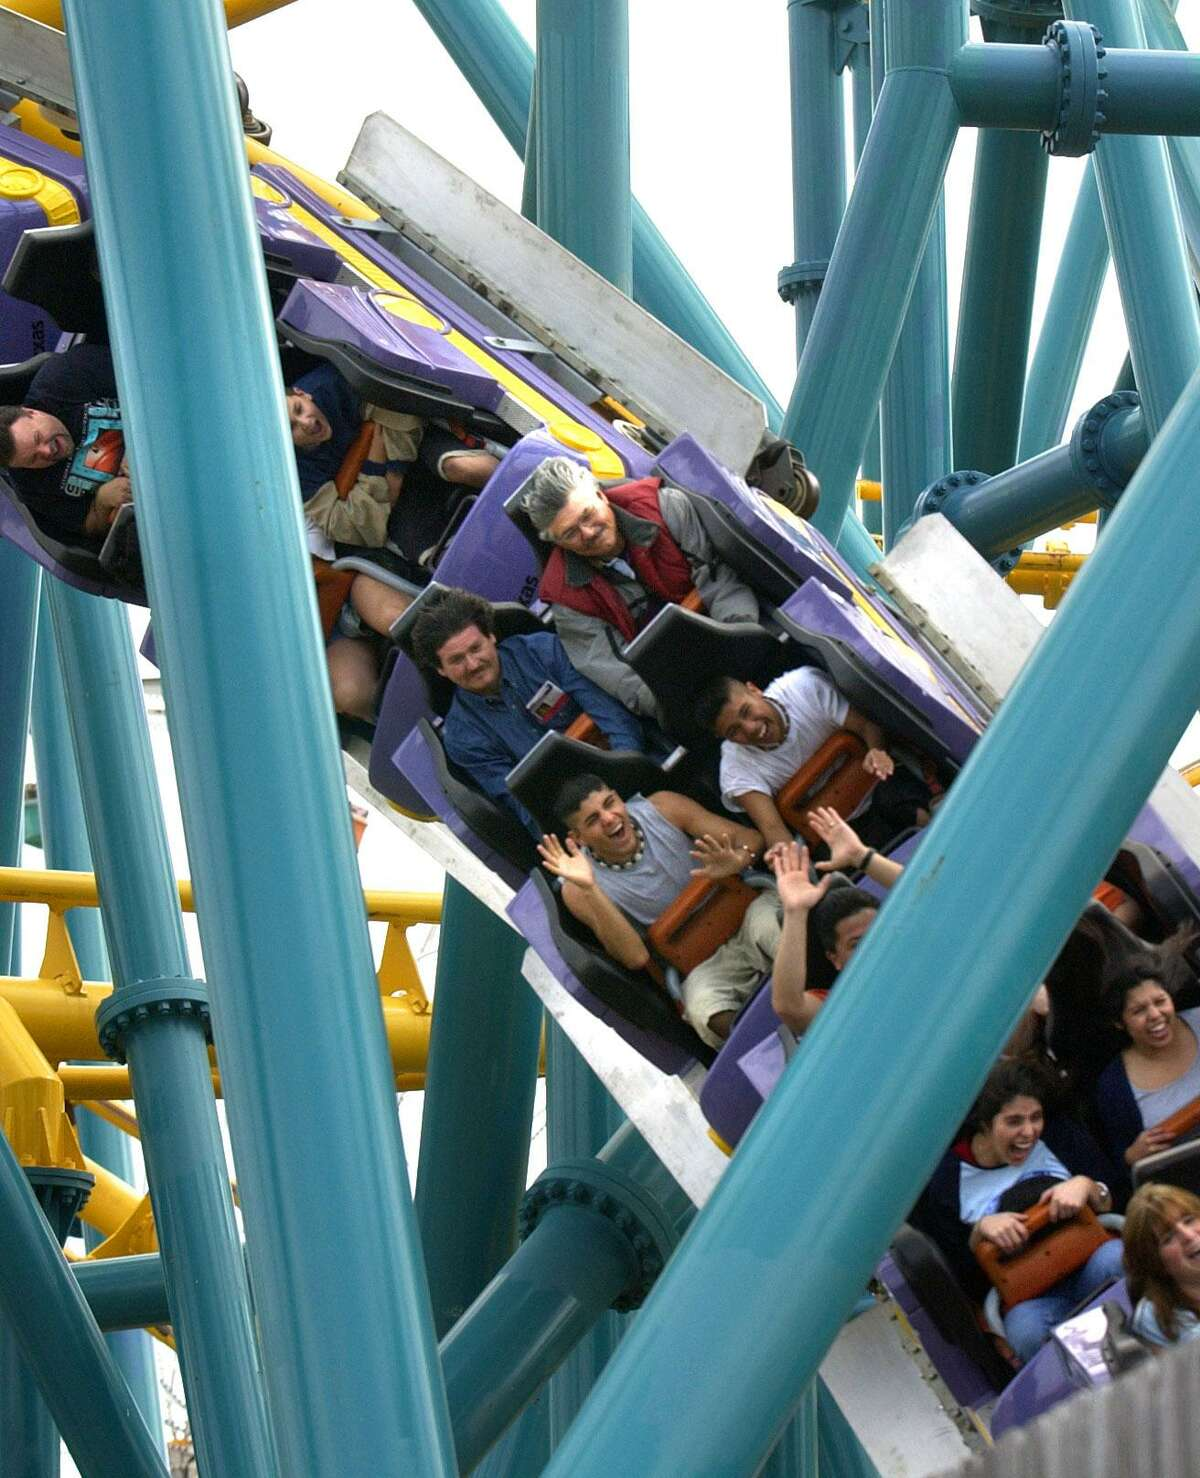 People ride the Poltergeist roller coaster in this 2003 photo.